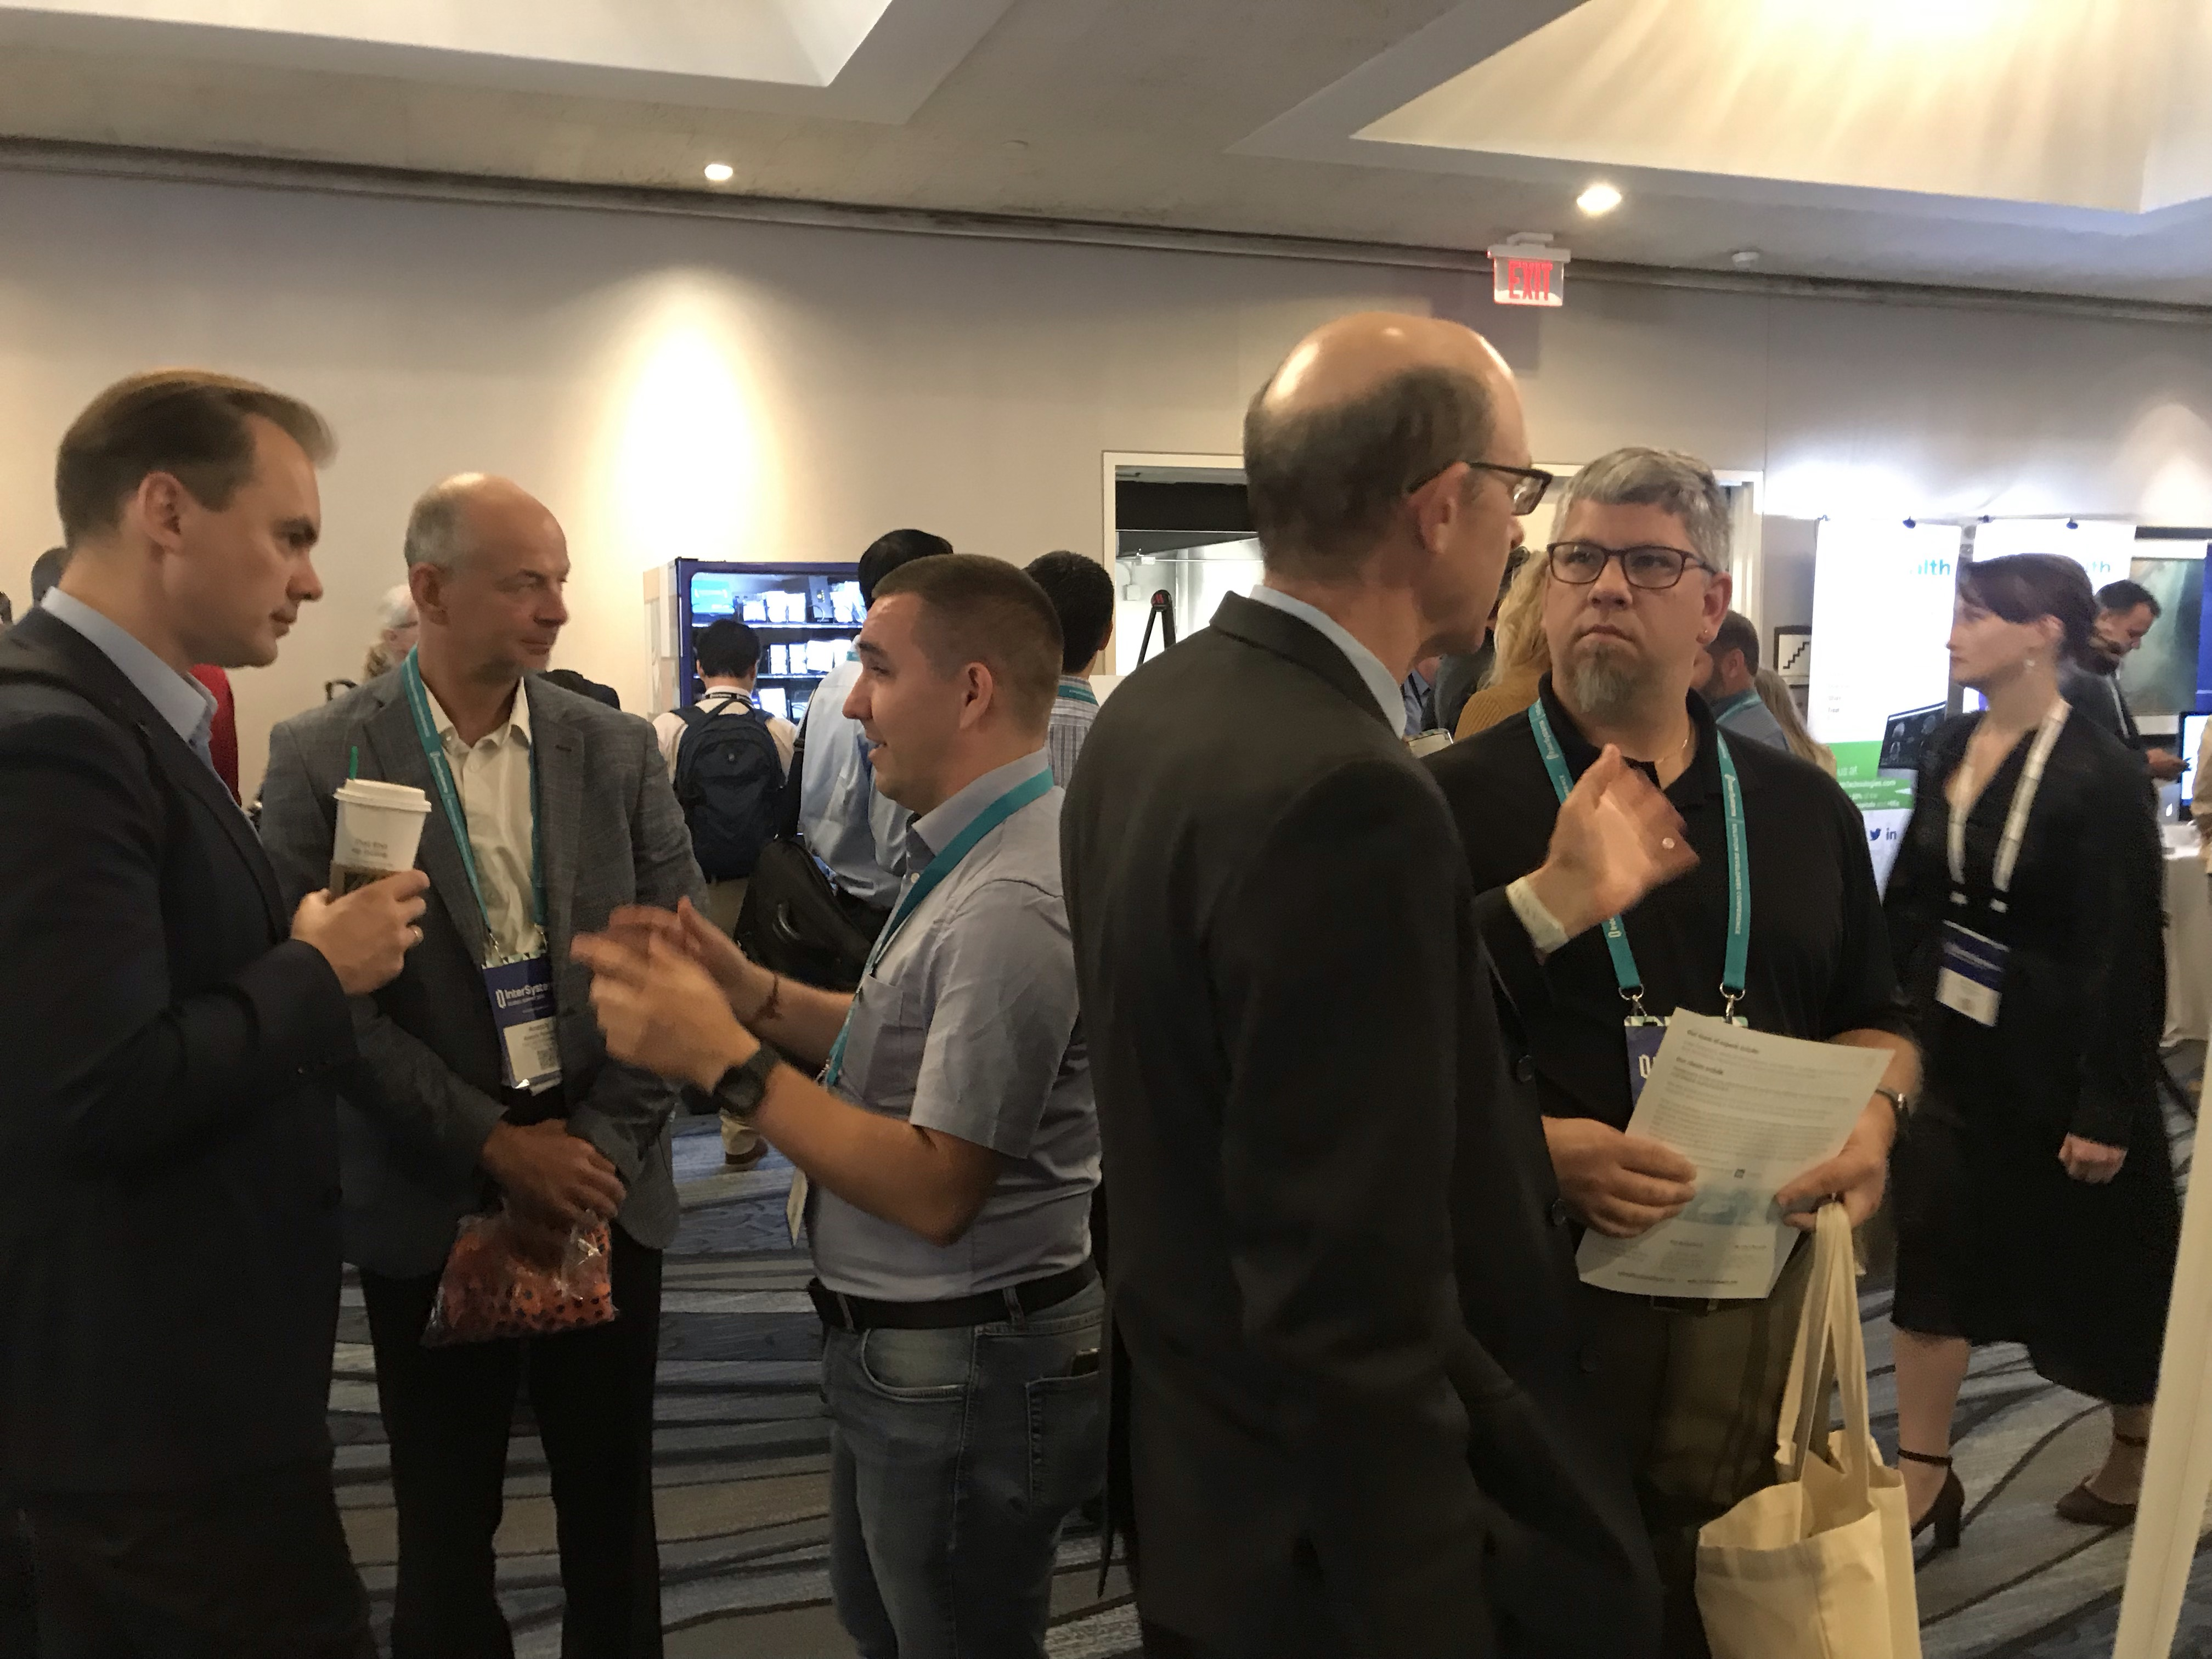 The InterSystems Global Summit was a three and a half-day event that was held at the Boston Marriott Copley Place, September 22-25, 2019.